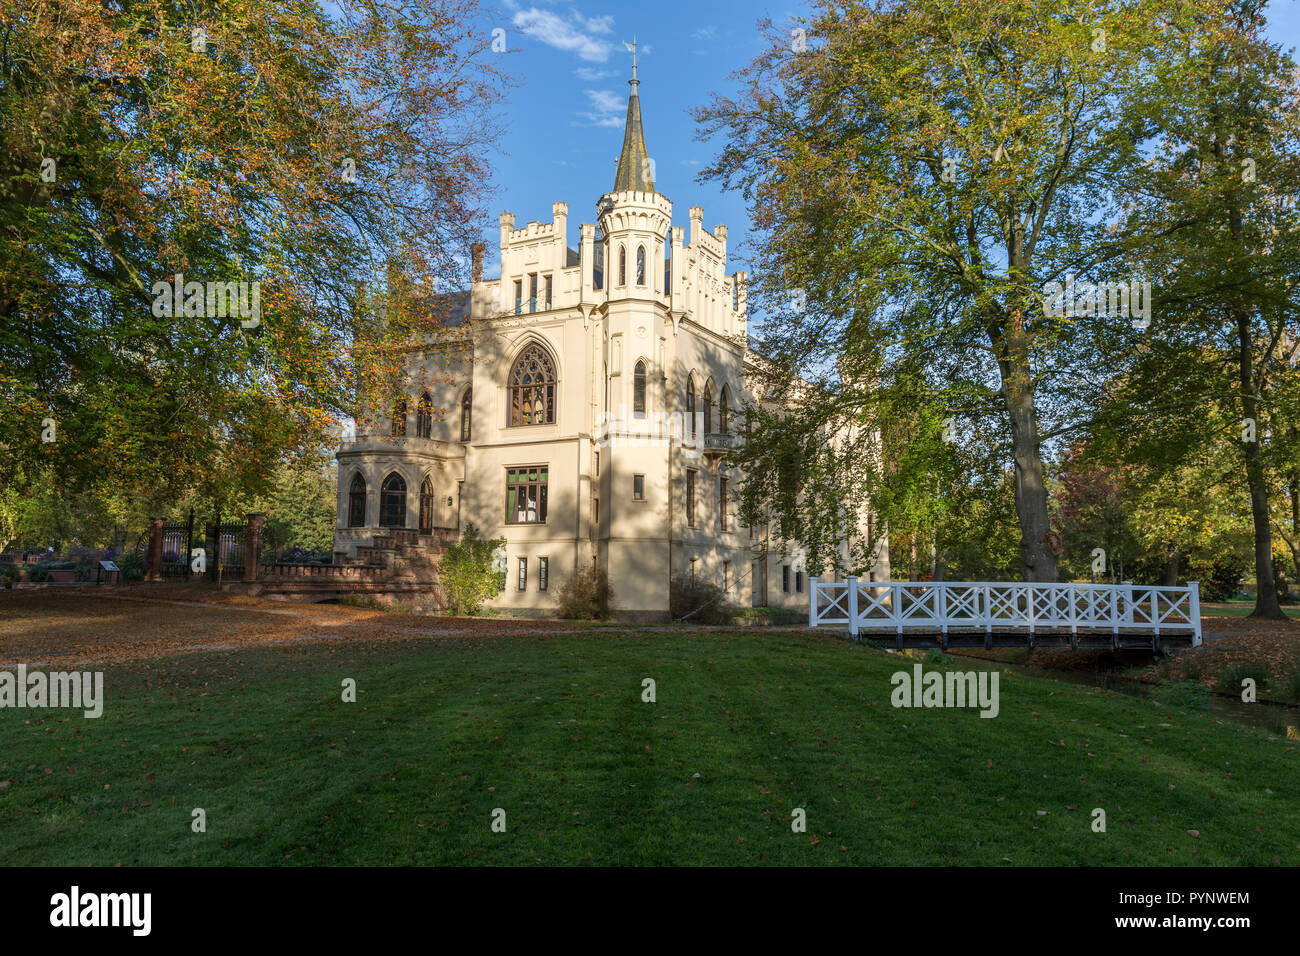 Evenburg Castle in Leer built in neo-Gothic style - Stock Image